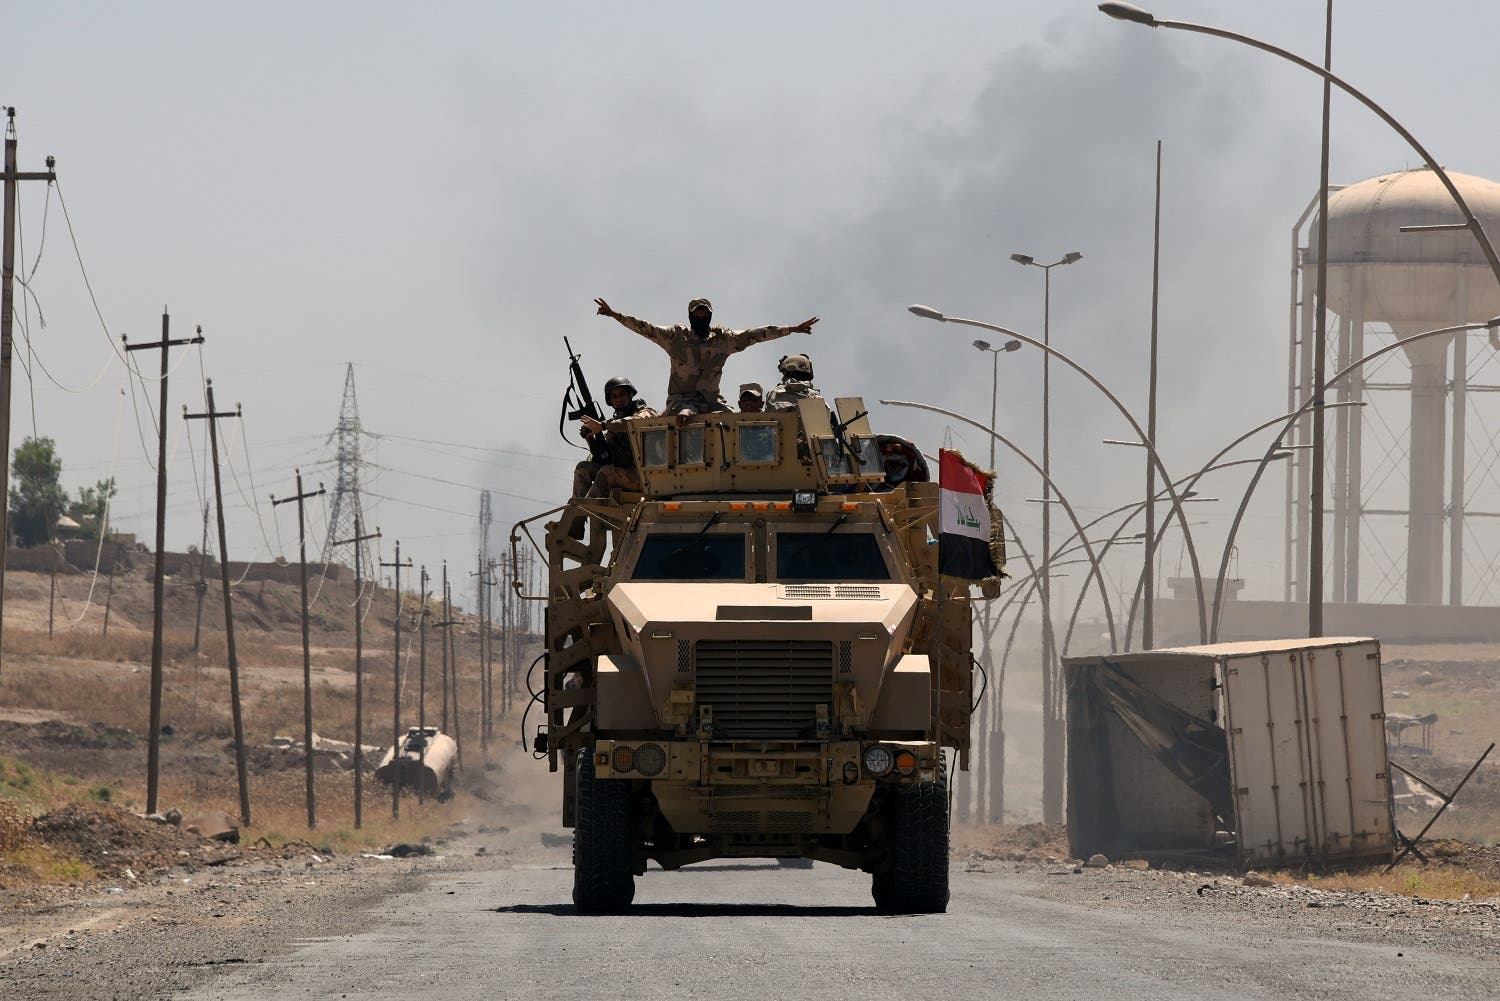 Iraqi government forces drive on a road leading to Tal Afar on June 9, 2017, during ongoing battles to retake the city from ISIS militants. (AFP)